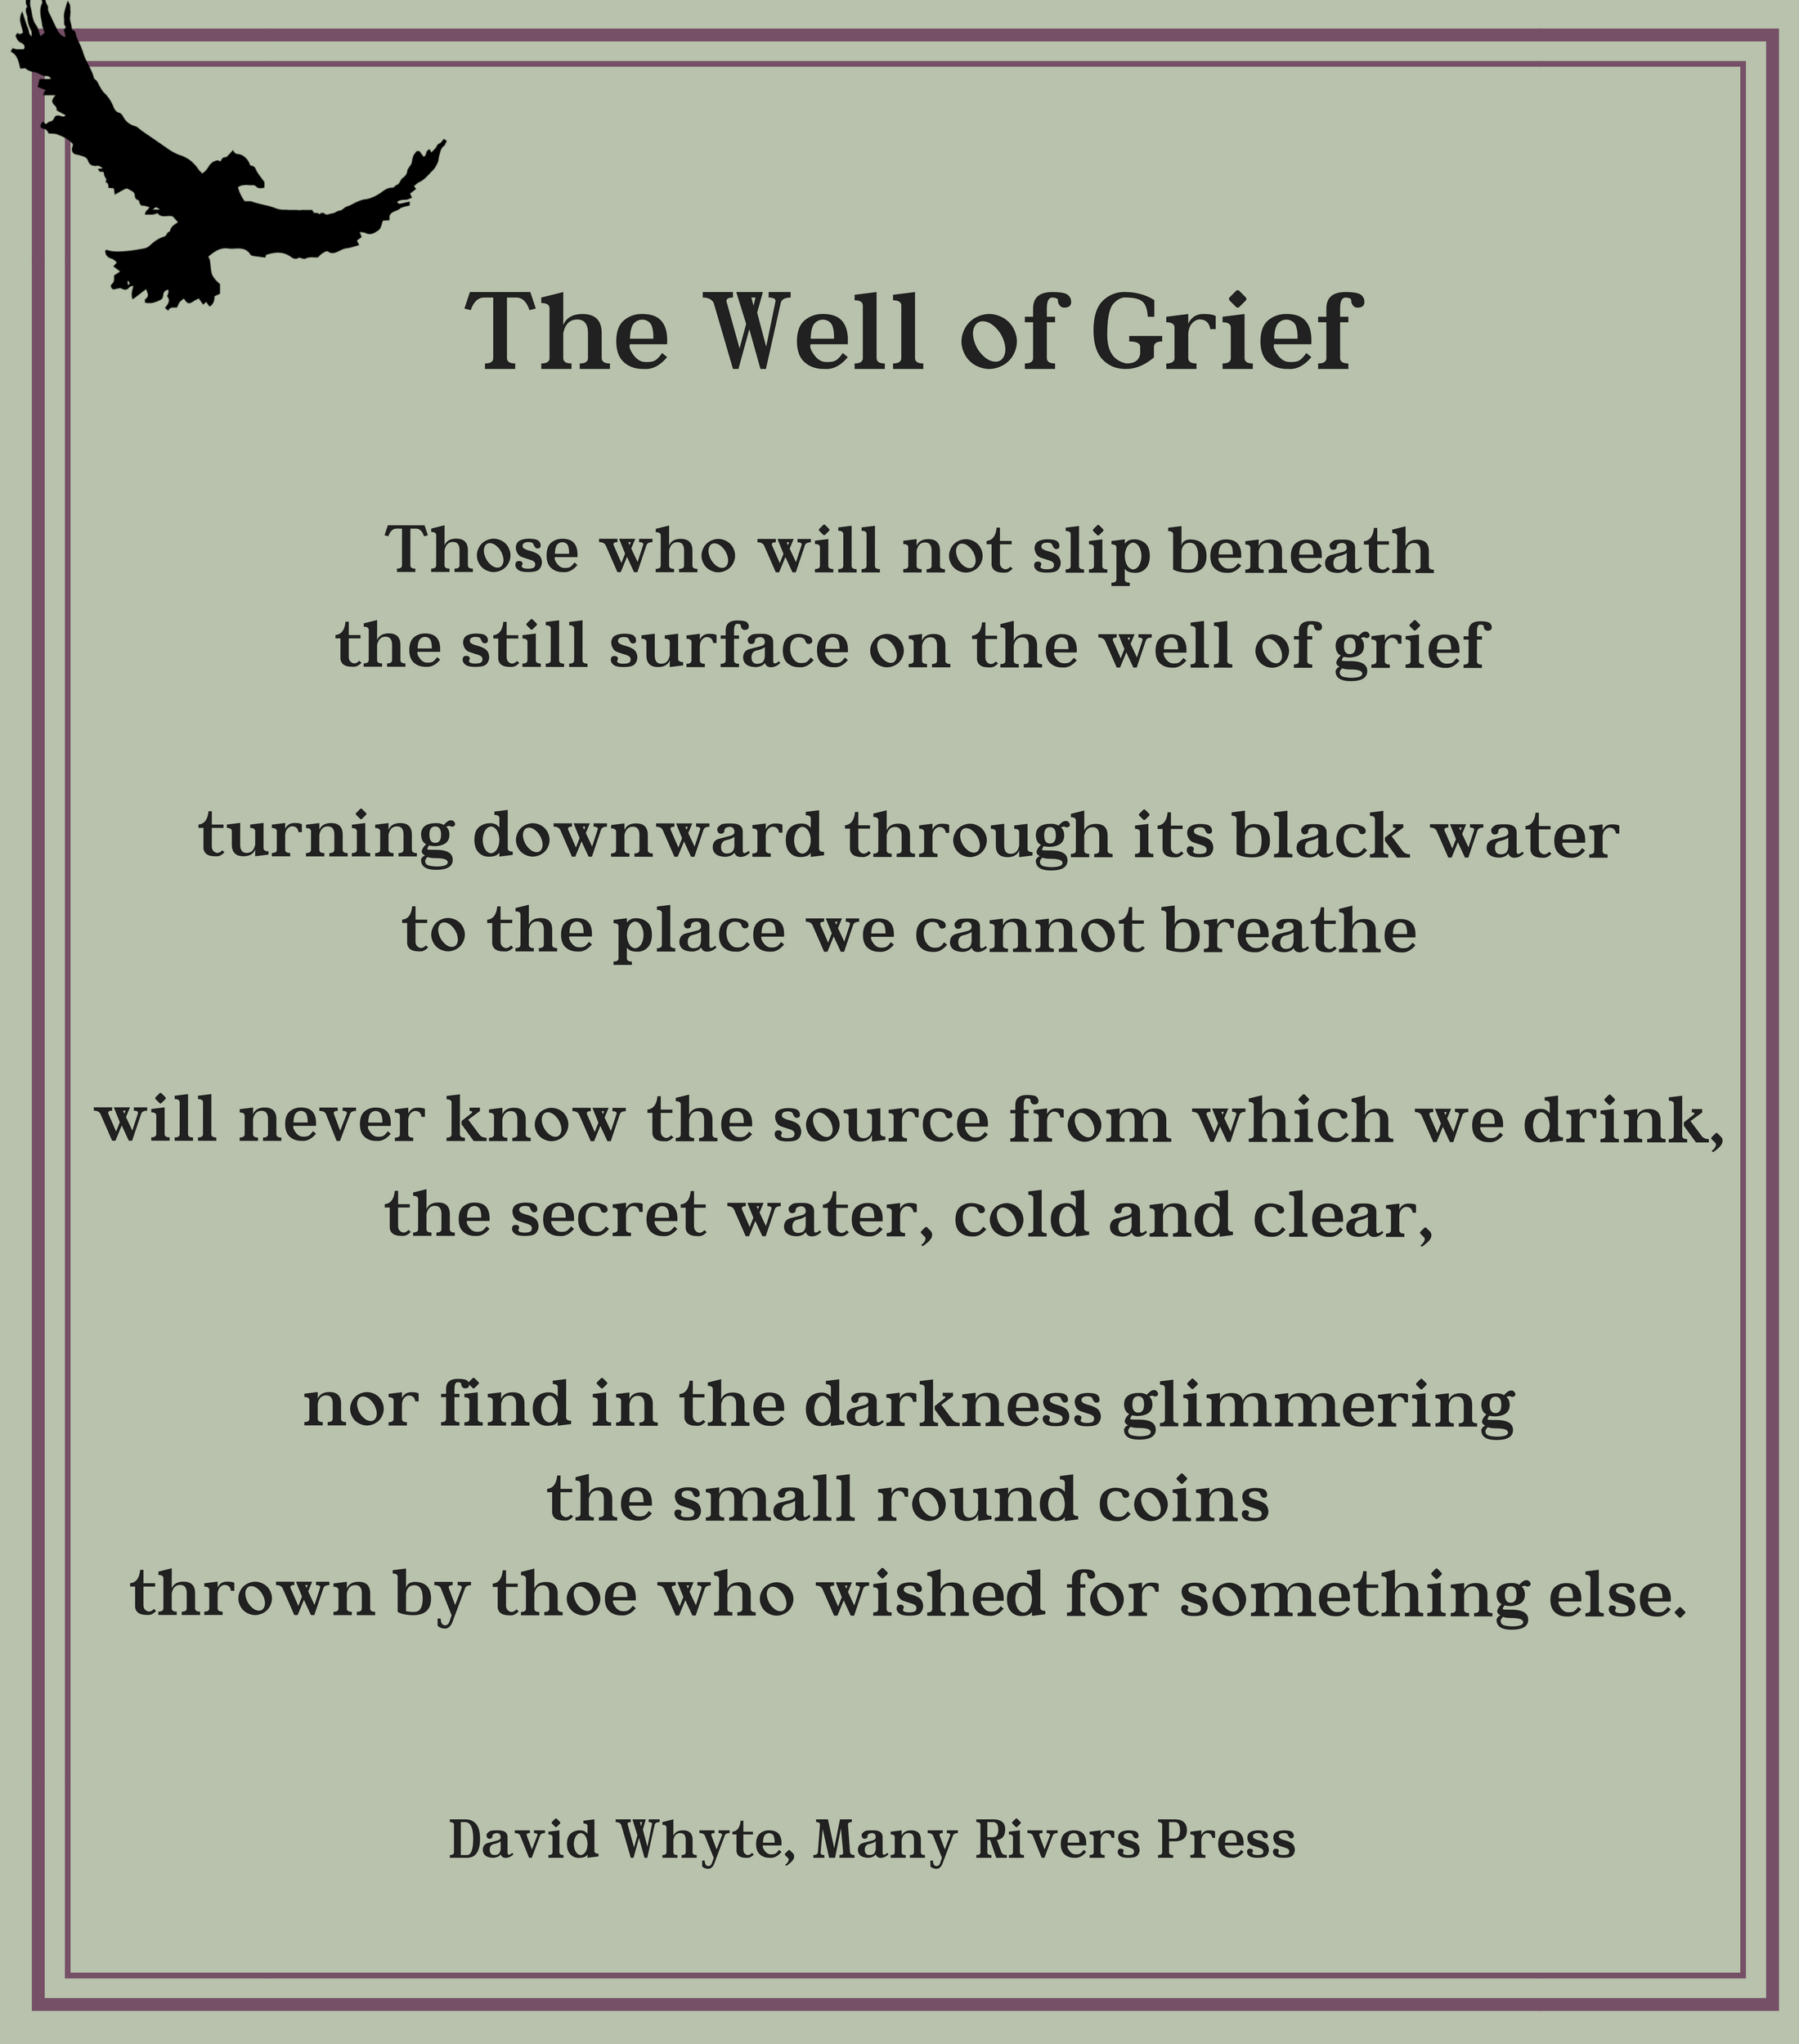 The Well of Grief (1).png